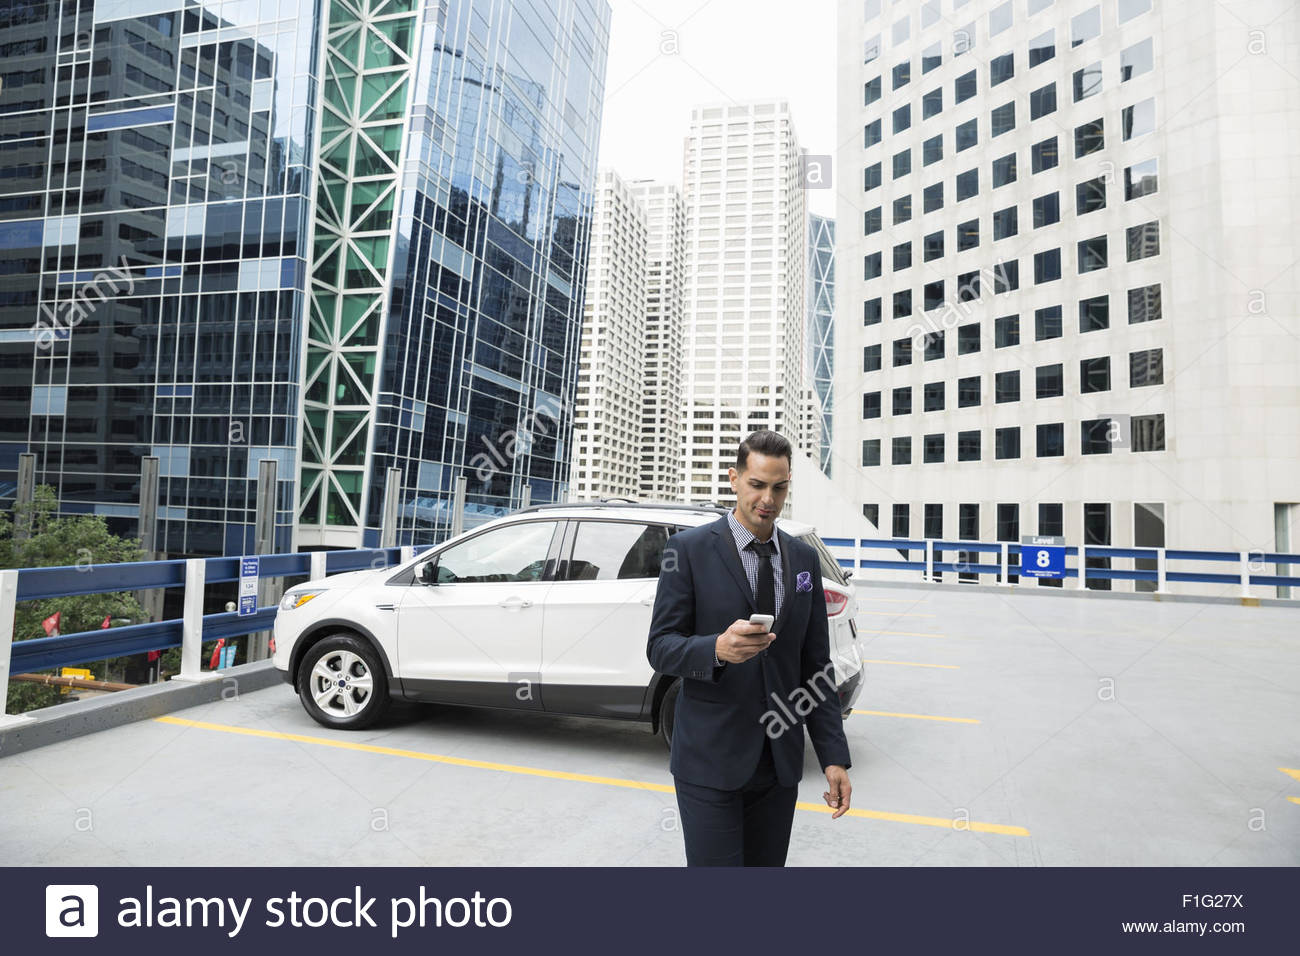 Businessman texting with cell phone city parking lot - Stock Image